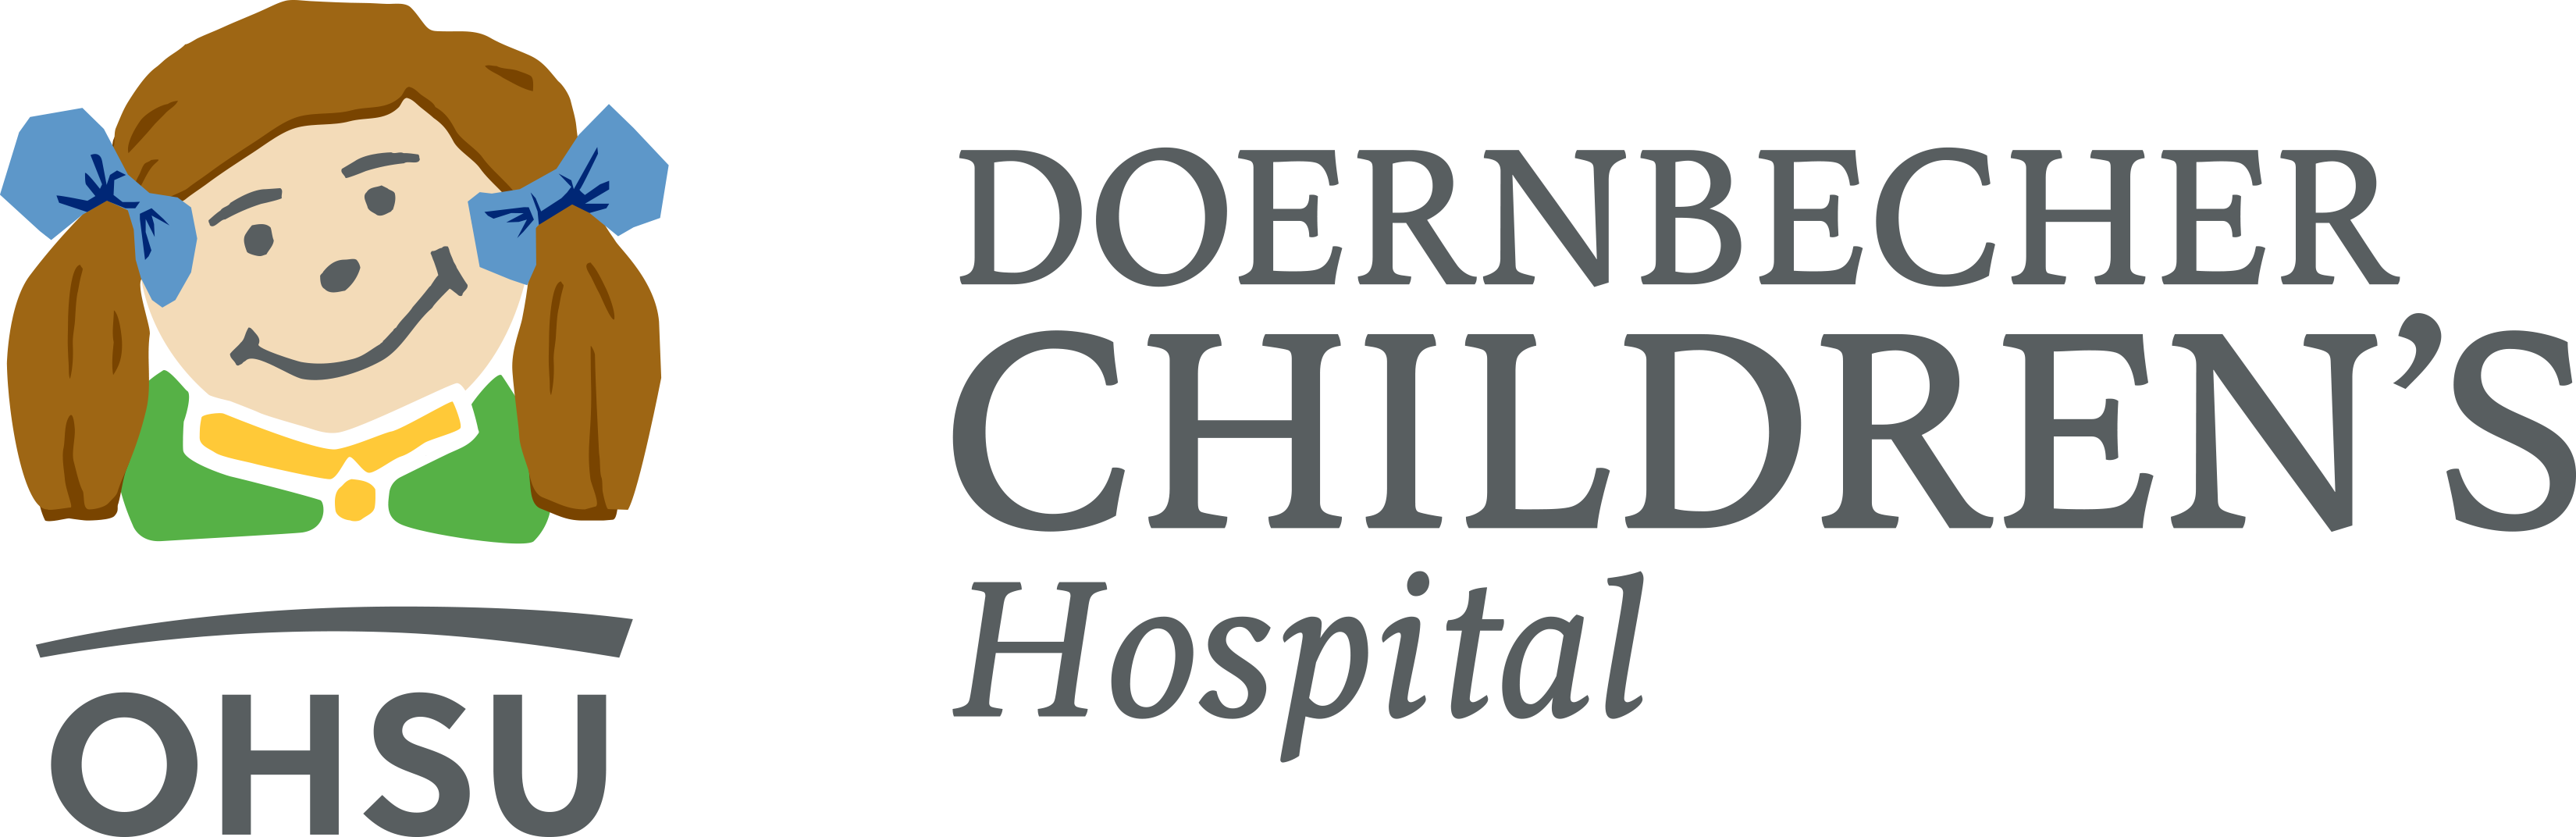 Doernbecher Children's Hospital